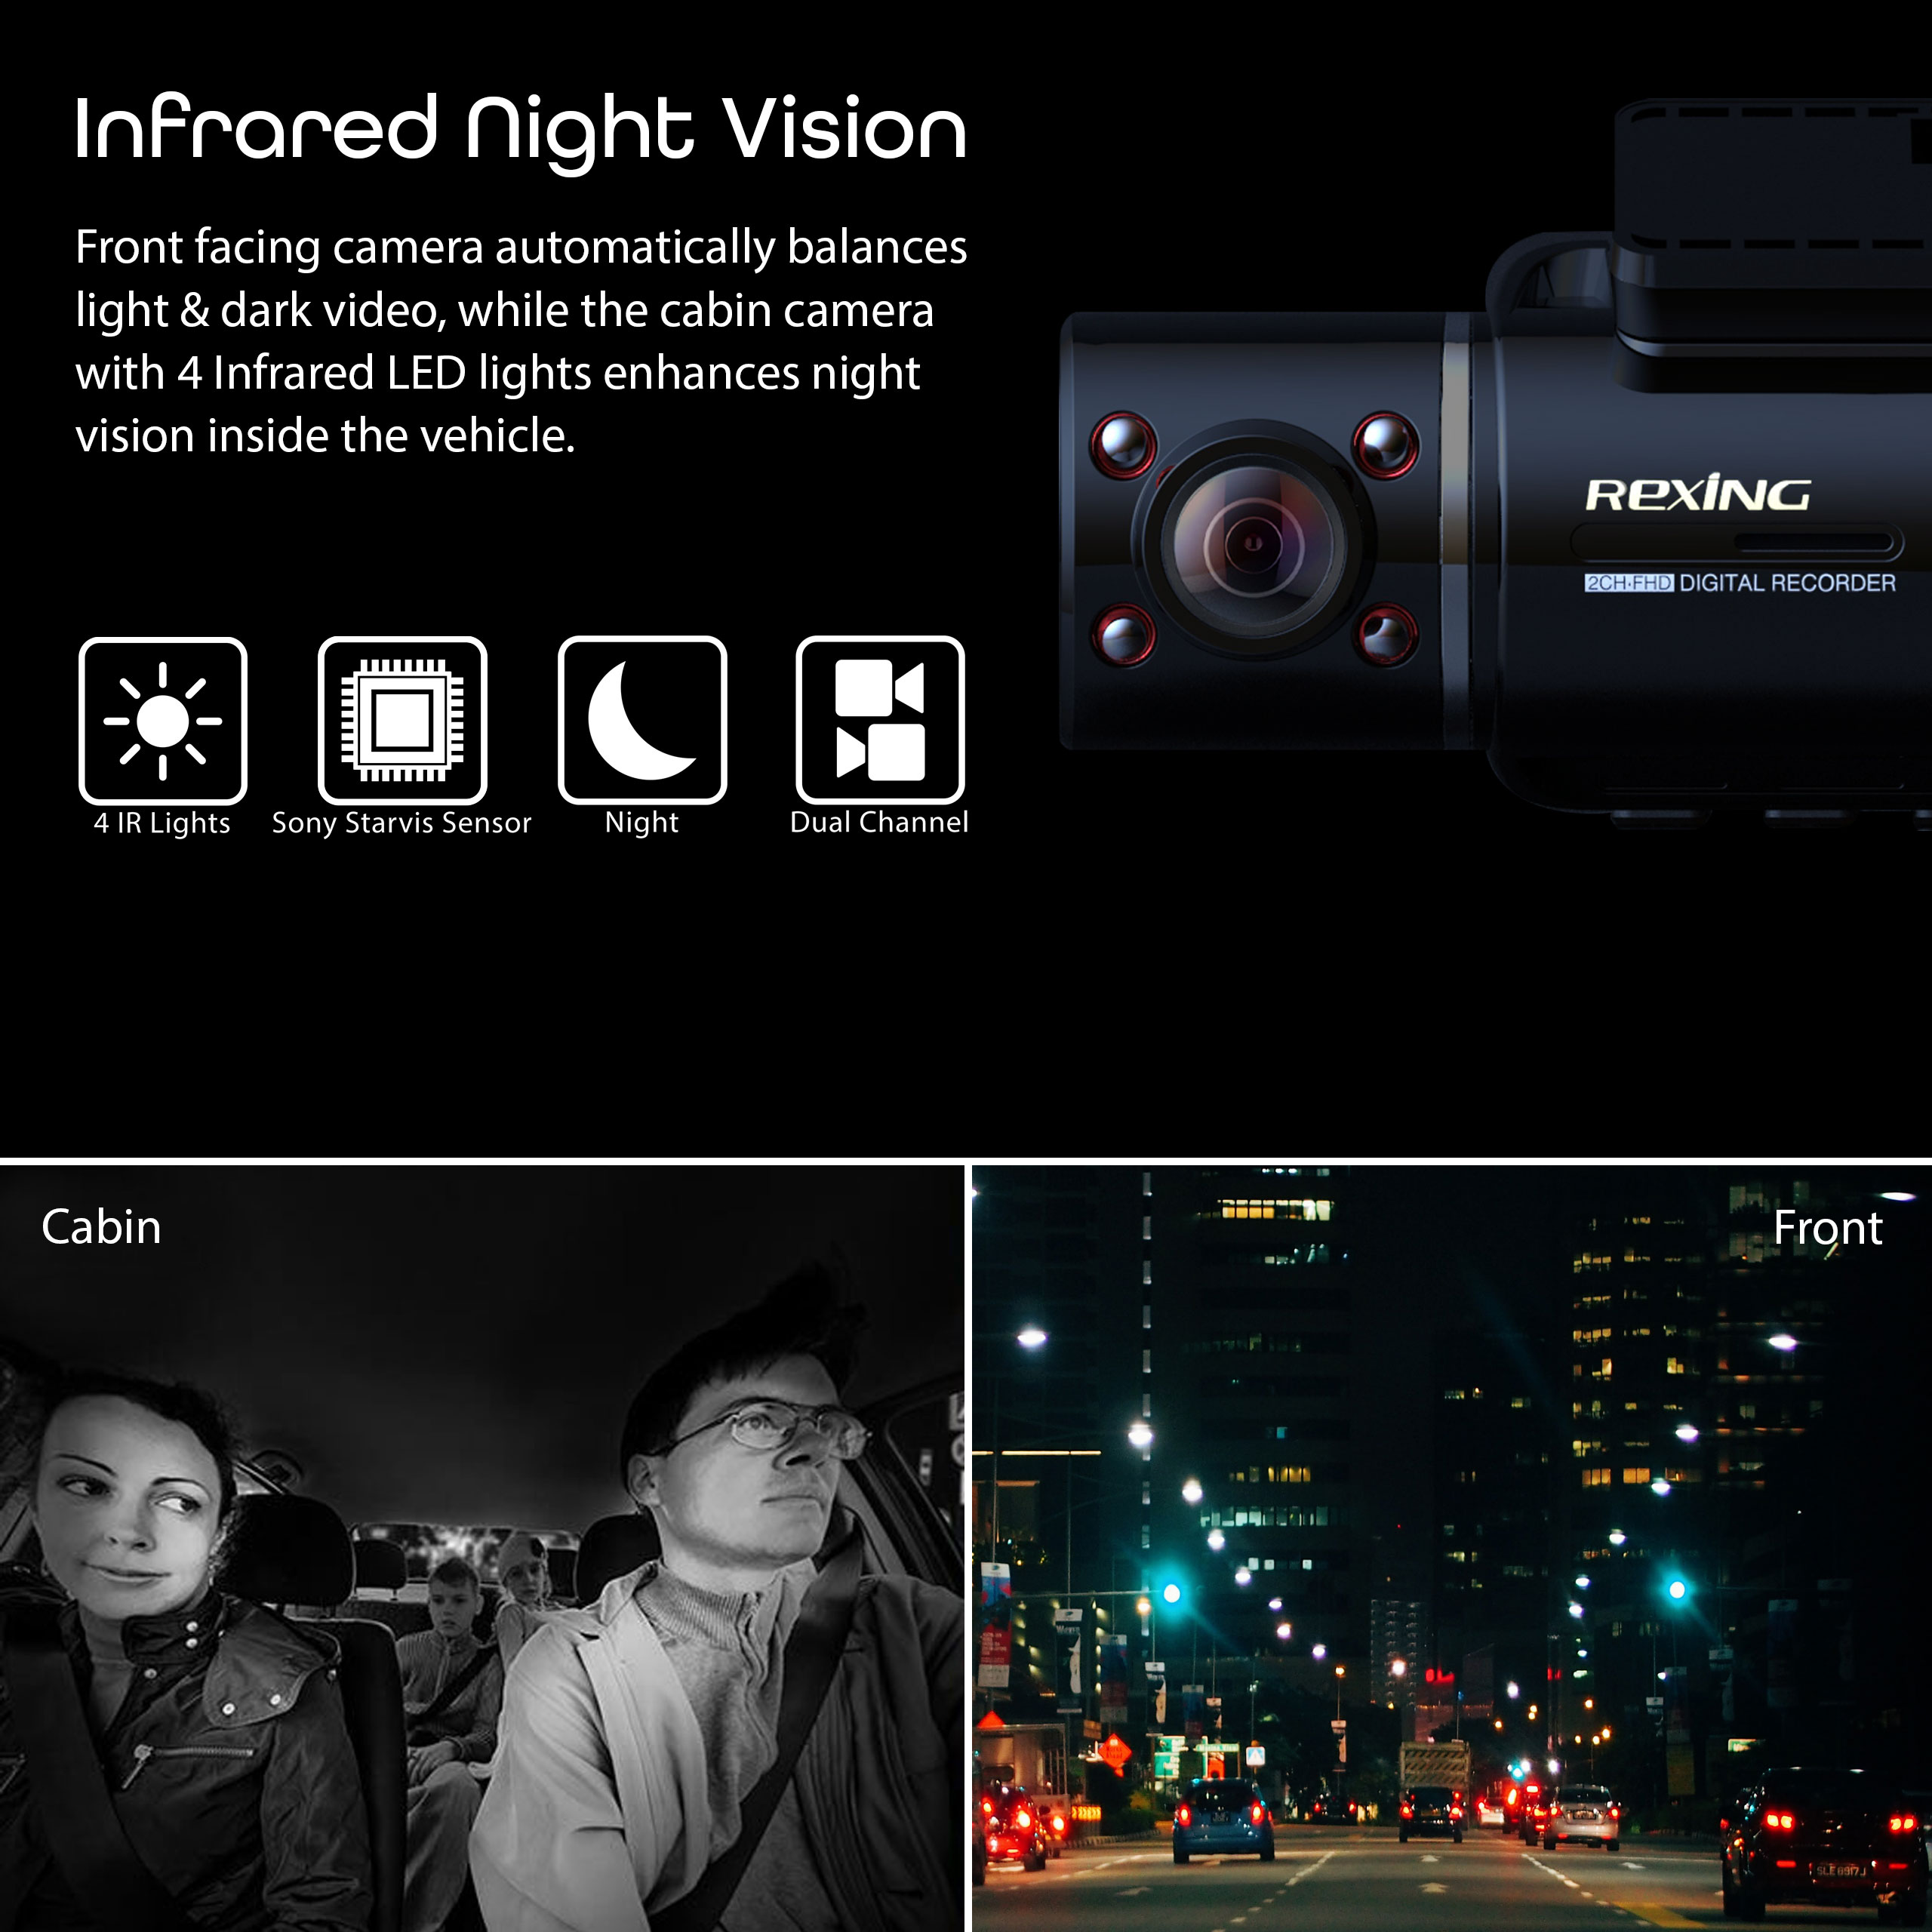 Rexing V3 Dual Camera Front and Inside Cabin Infrared Night Vision Full HD 1080p WiFi Car Taxi Dash Cam with Built-in GPS Mobile App Parking Monitor Supercapacitor 2.7 LCD Screen